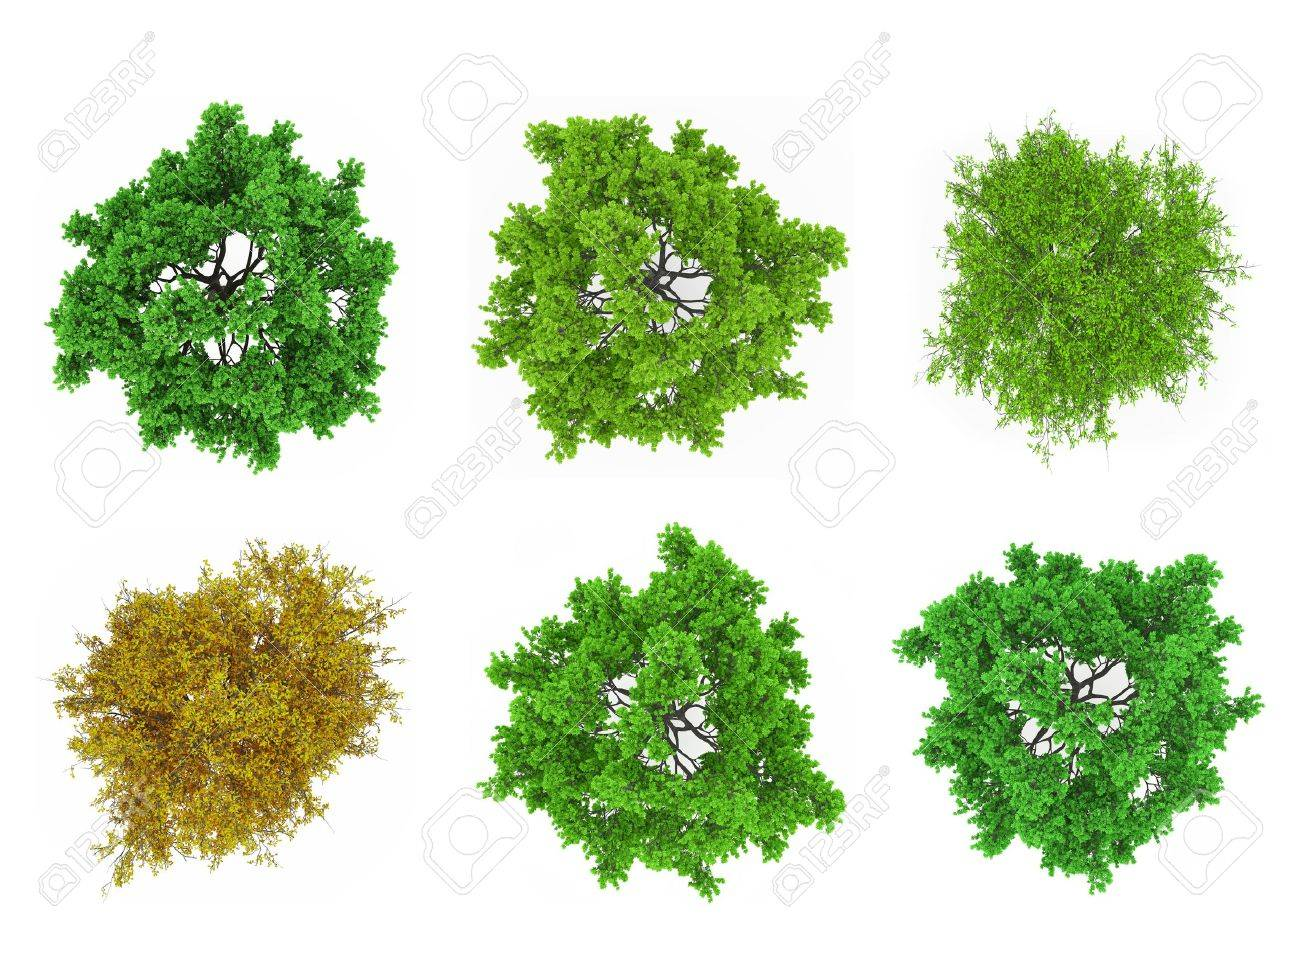 Tree tops isolated - 30440429